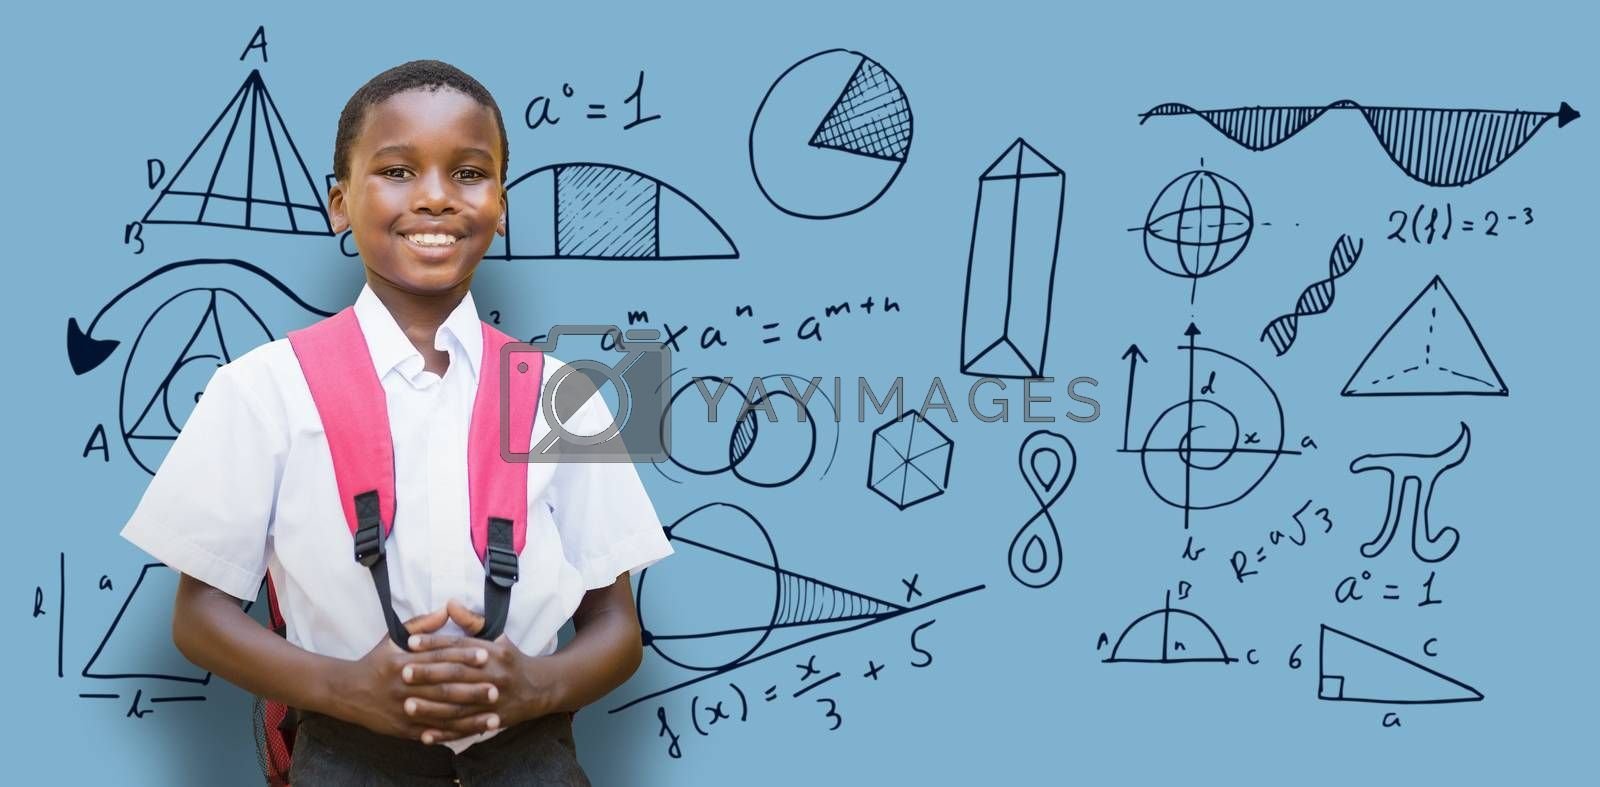 Composite image of portrait of student with schoolbag by Wavebreakmedia